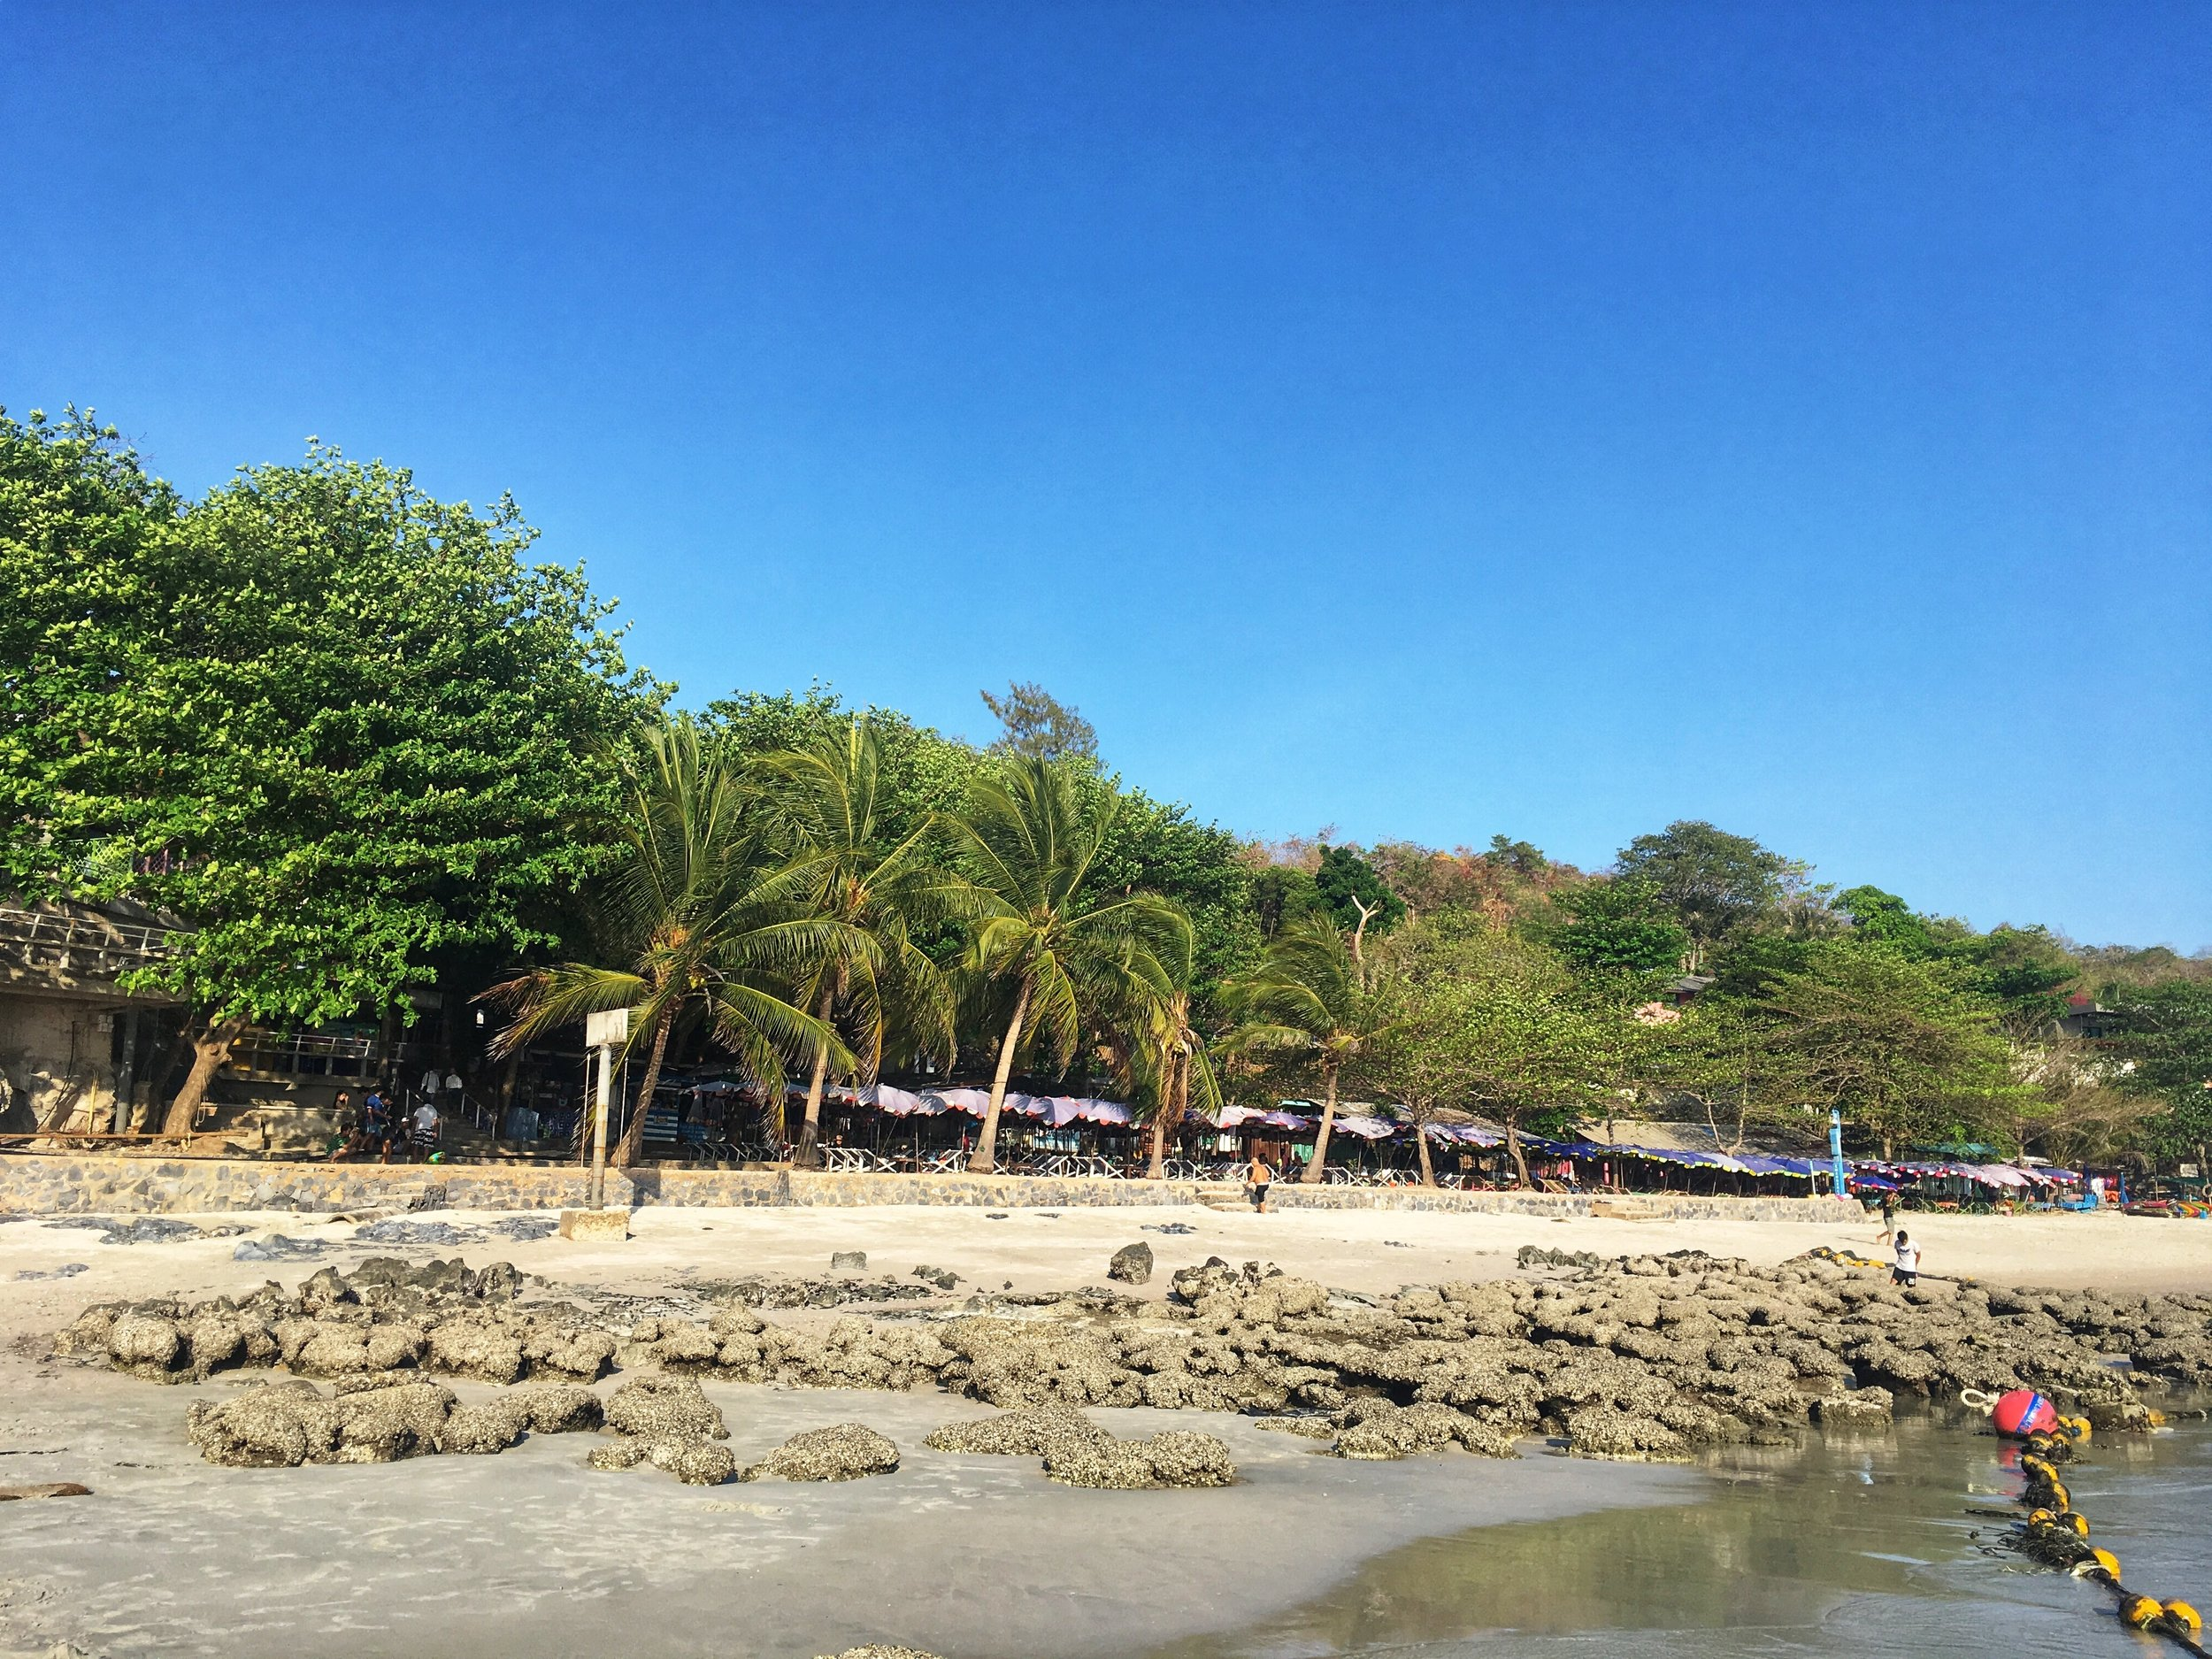 there are plenty of restaurants and shops on Tham Phang Beach